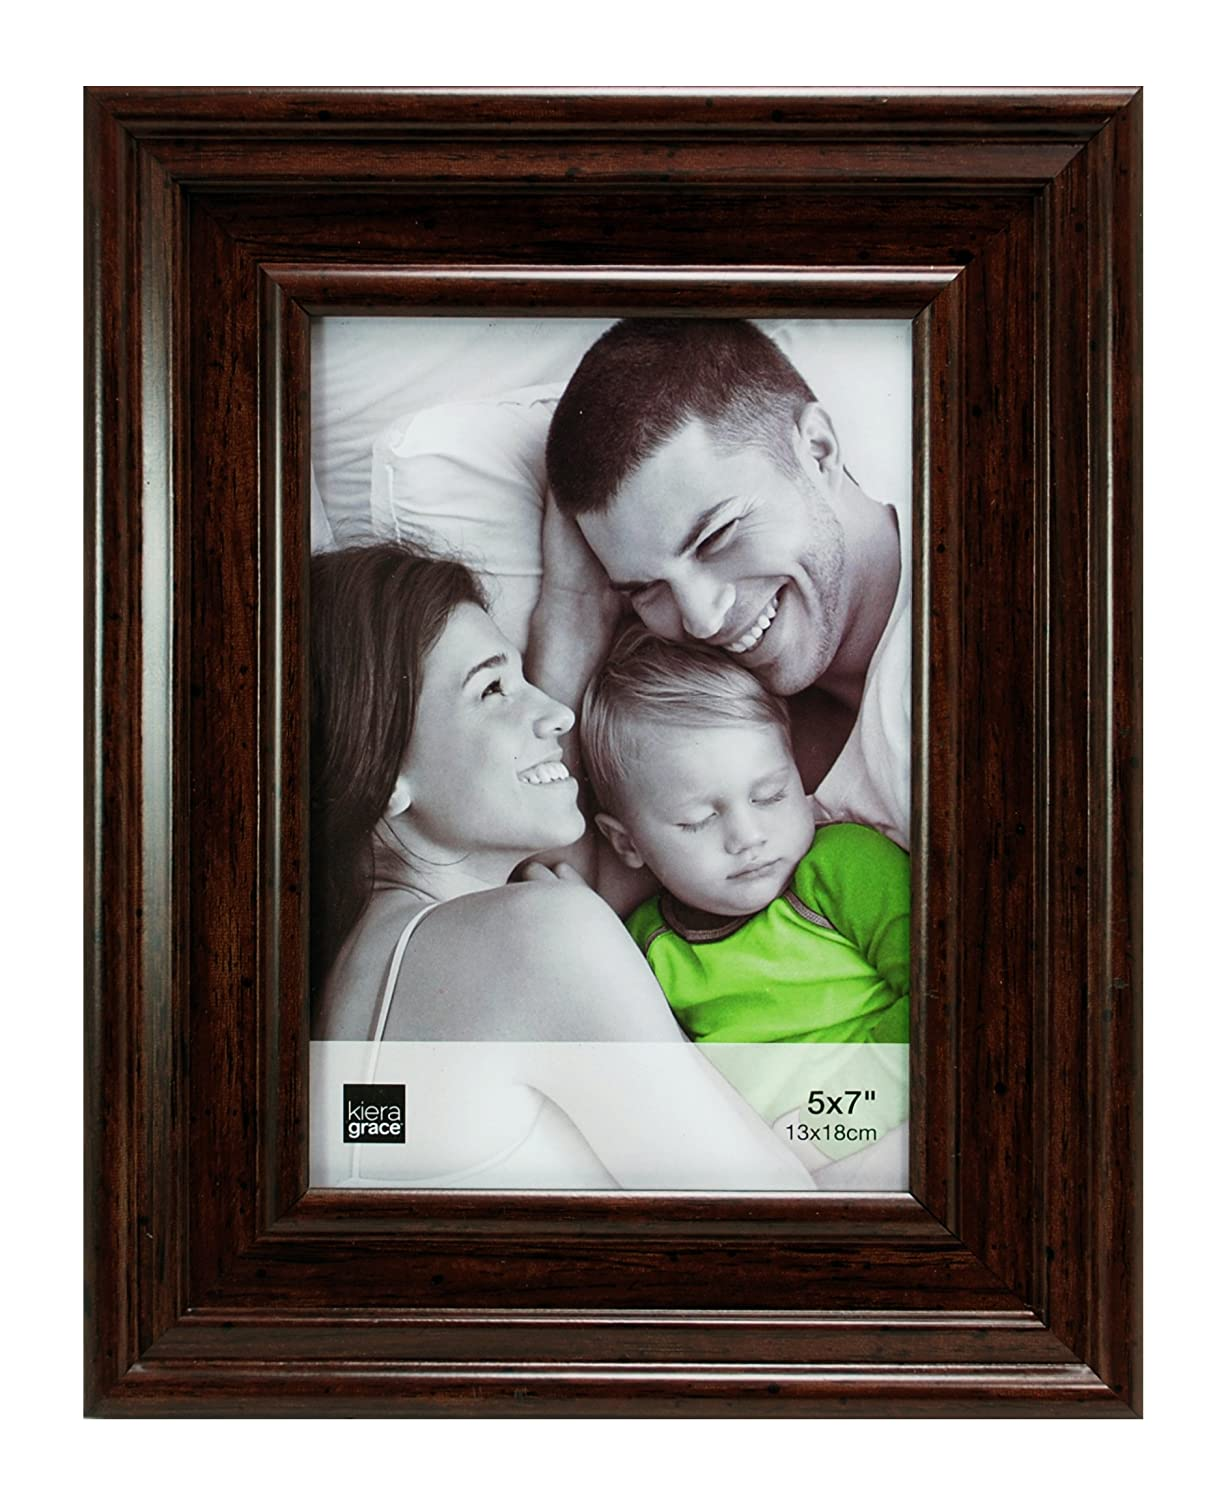 Amazon kiera grace cole picture frame 5 by 7 inch antique amazon kiera grace cole picture frame 5 by 7 inch antique walnut finish home kitchen jeuxipadfo Image collections